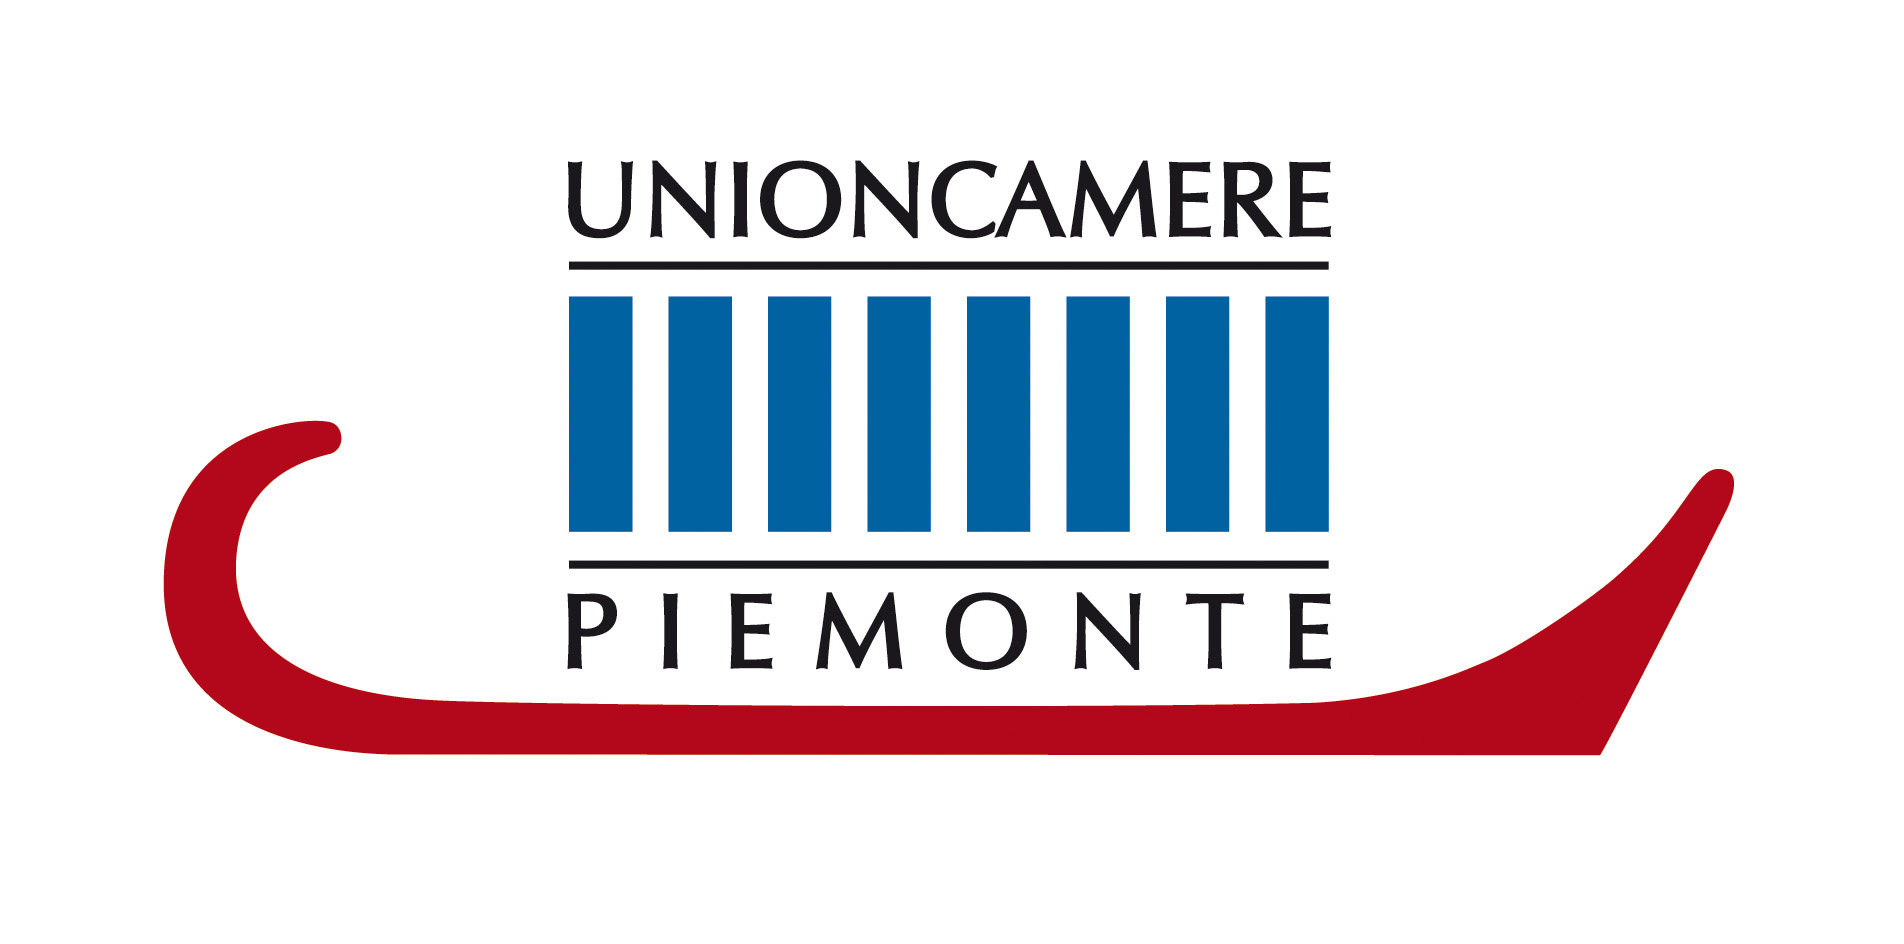 UNIONCAMERE PIEMONTE (Regional Union of the Chambers of commerce of Piedmont Region)